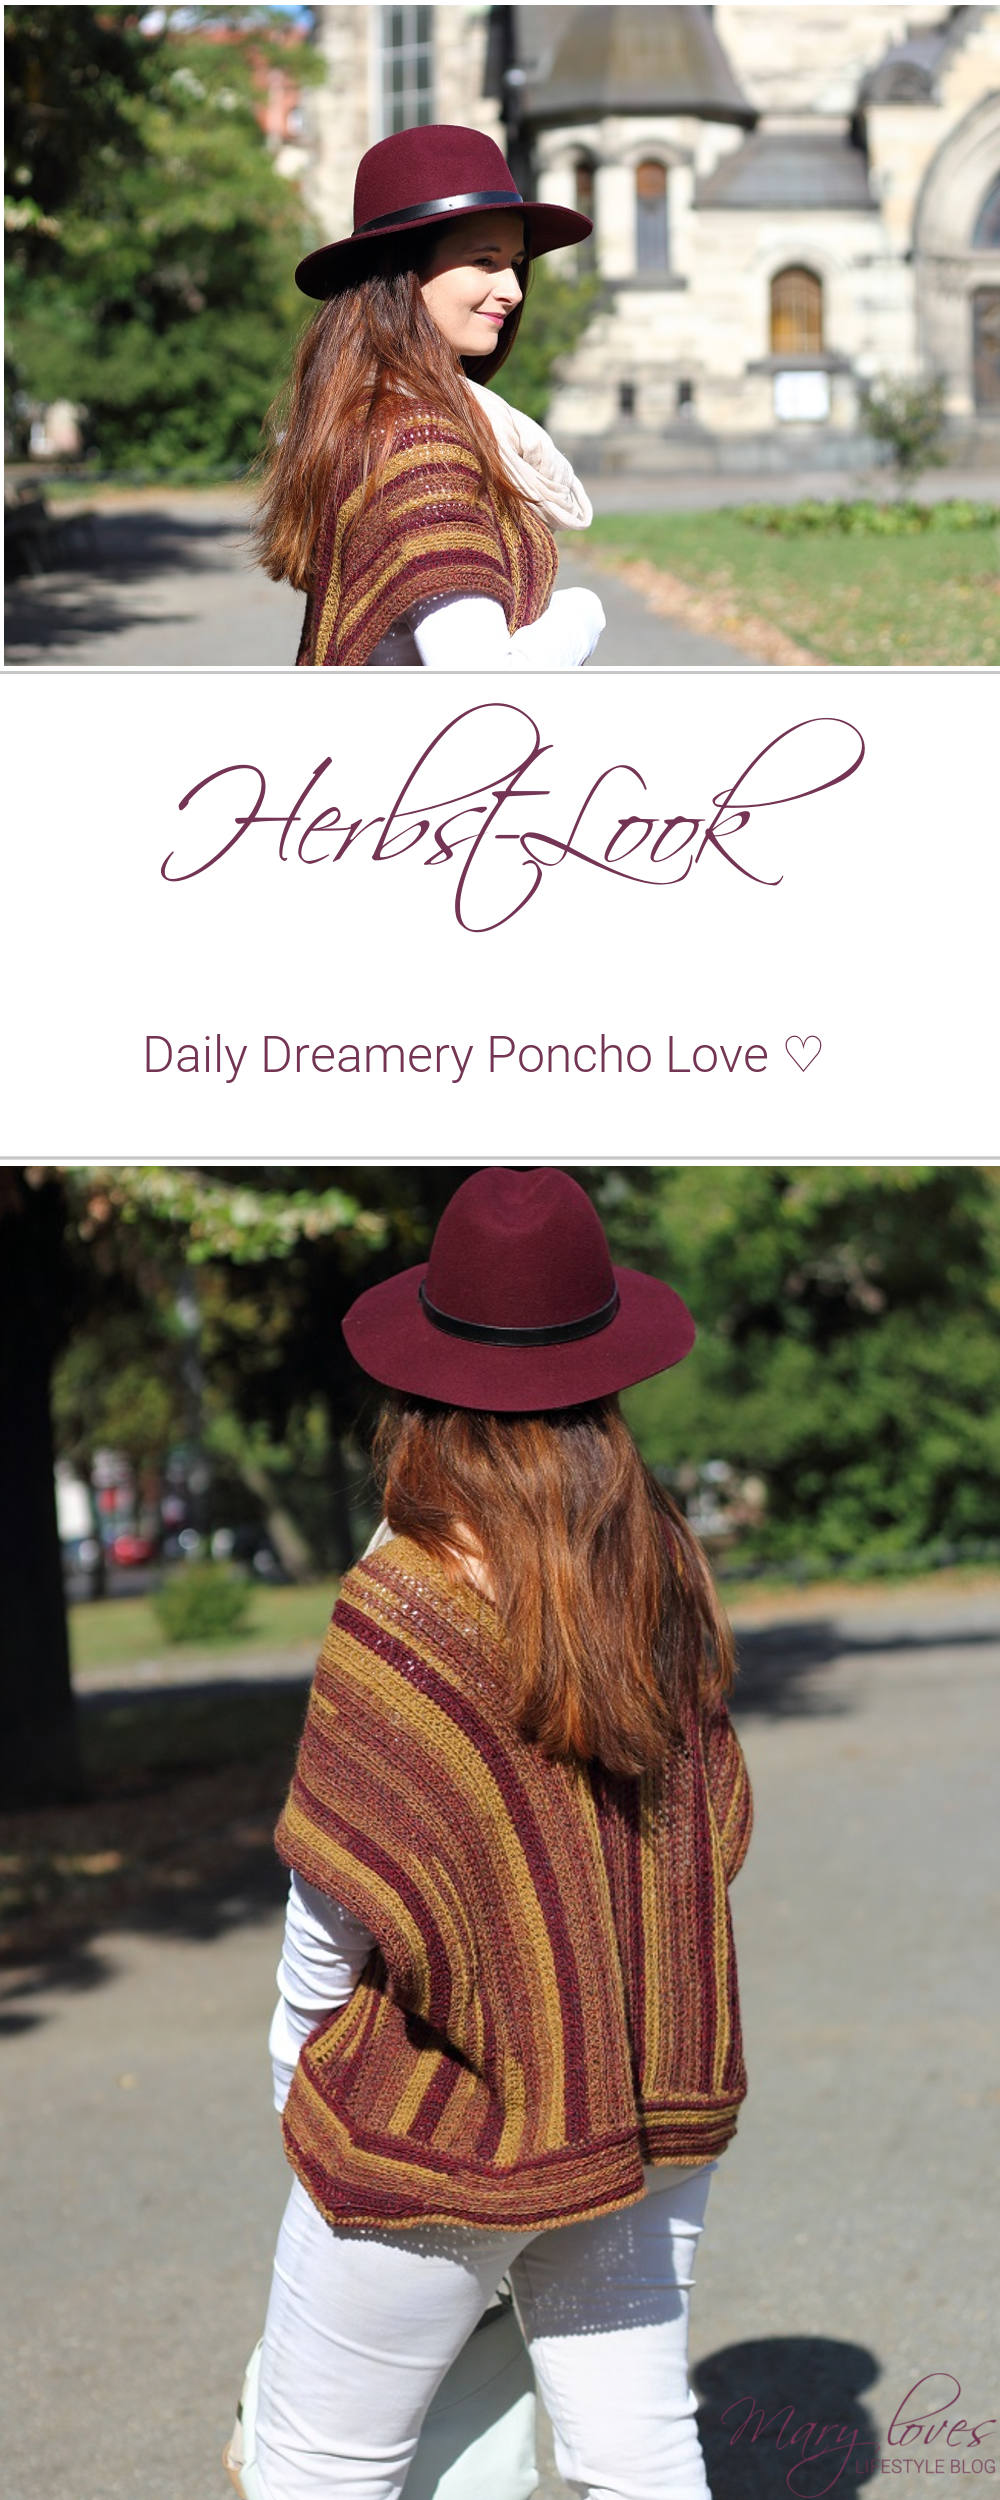 Outfit] Daily Dreamery Poncho Love - Herbstlook